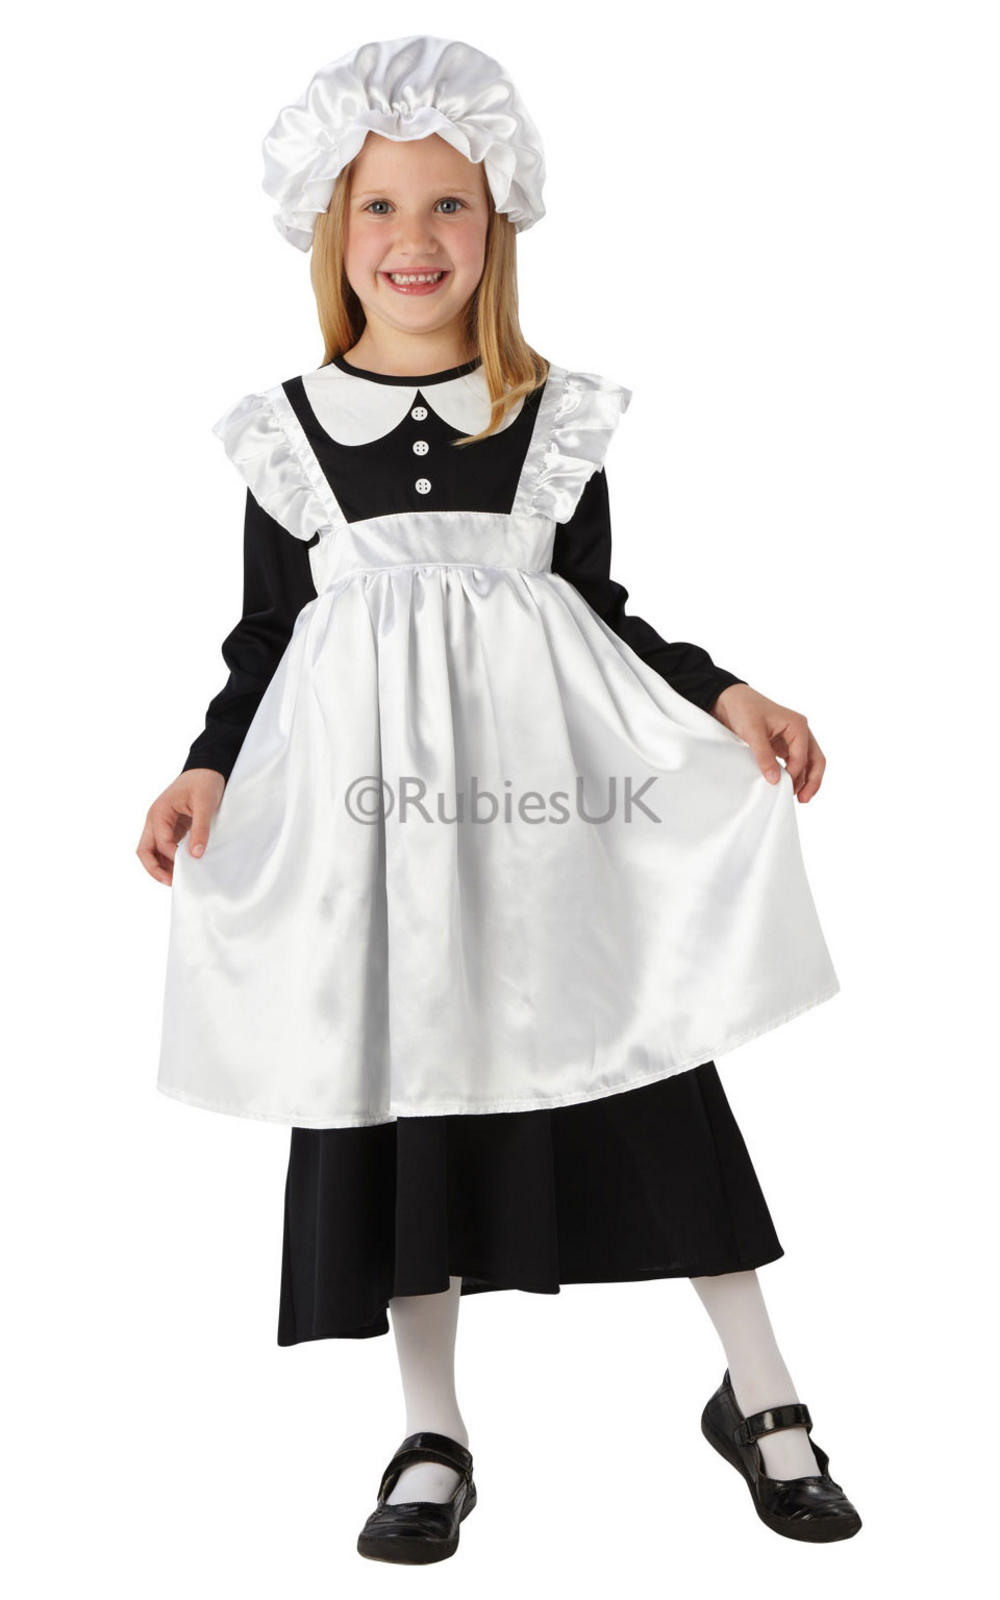 Kidsu0026#39; Victorian Maid Costume | Girlu0026#39;s World Book Day Fancy Dress Costumes | Mega Fancy Dress